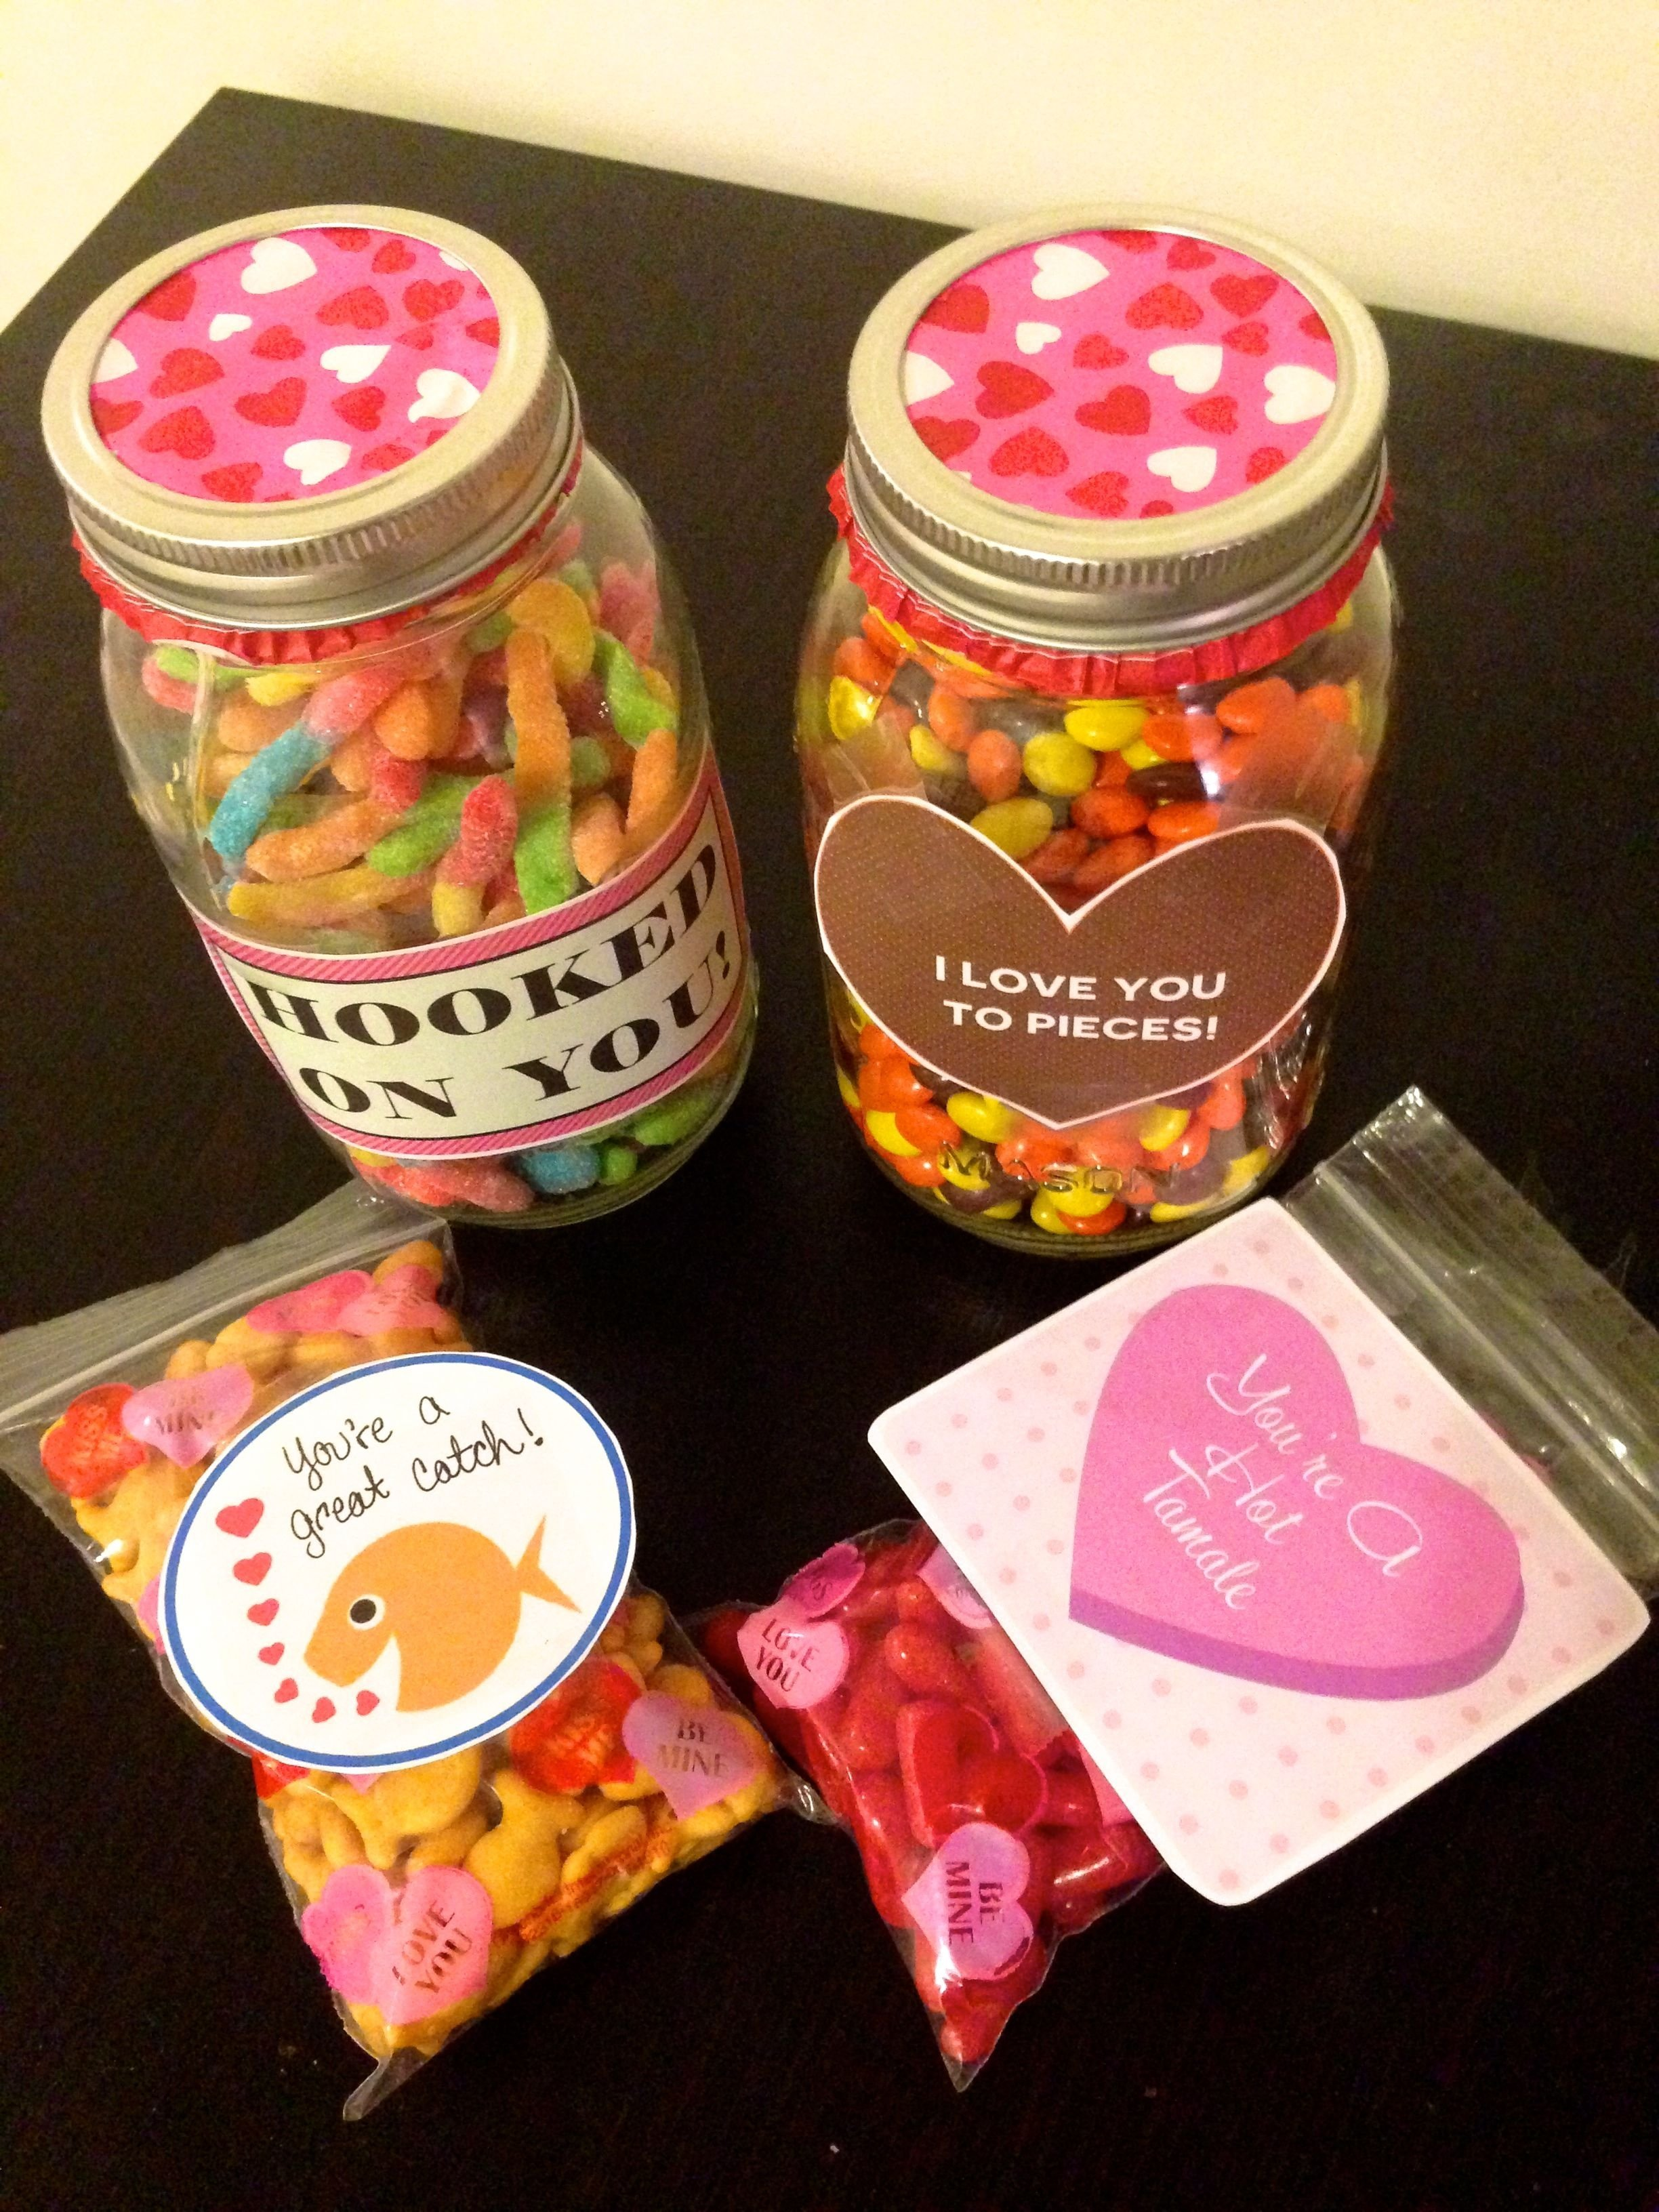 10 Wonderful Sweetest Day Gift Ideas Men romantic gift idea for him on a budget budgeting honey and romantic 8 2021